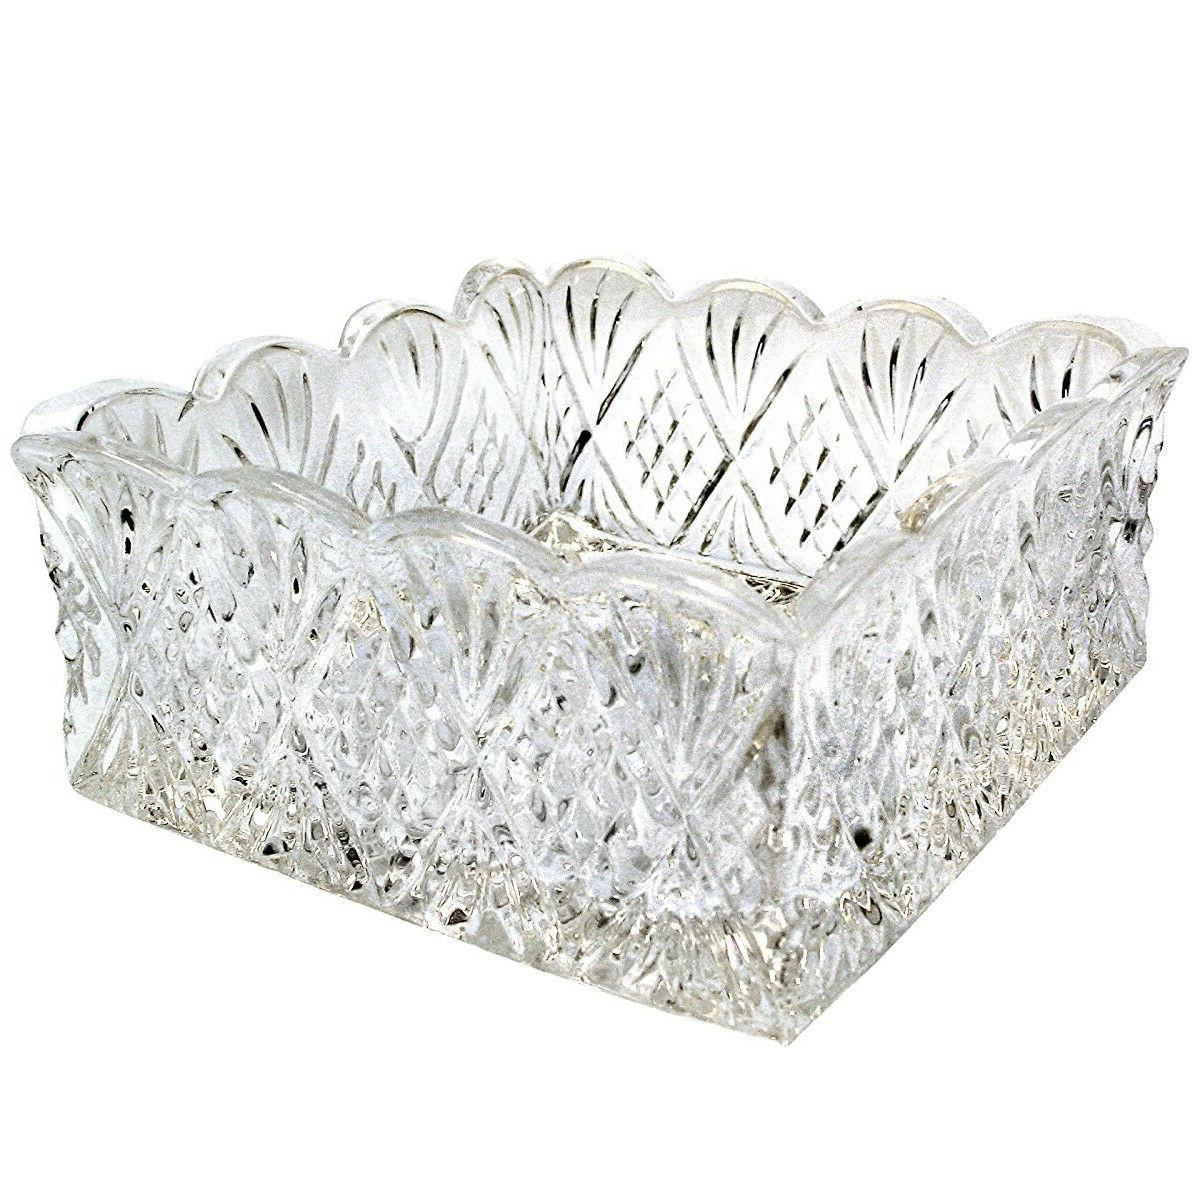 Square Clear Glass Napkin Holder Buffet Dinner Table Display